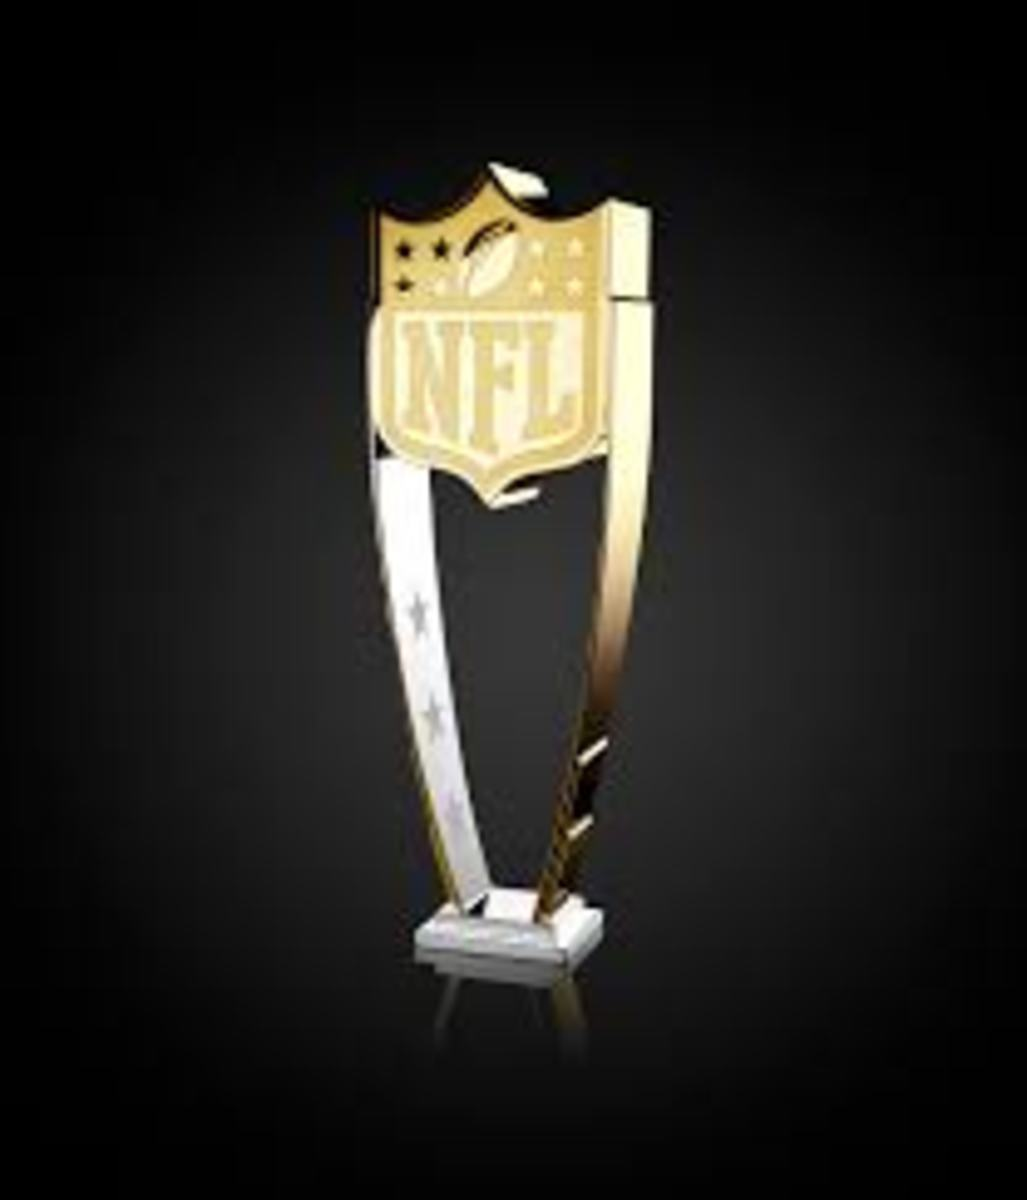 Coach of the year award last year was Kevin Stefanski of the Browns